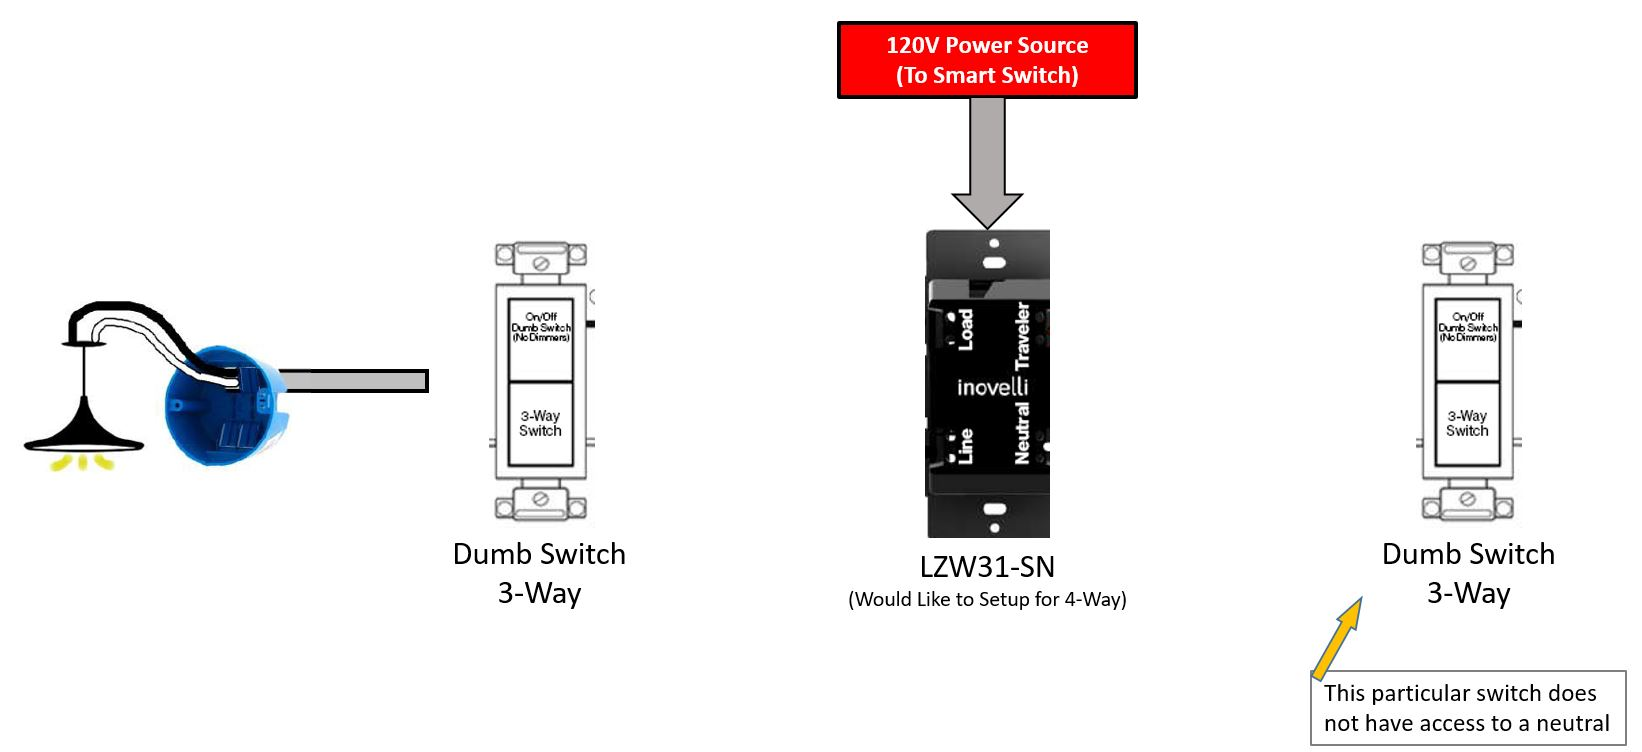 4 way switch wiring diagram with dimmer 4 way wiring red series switch alternate wiring question  4 way wiring red series switch